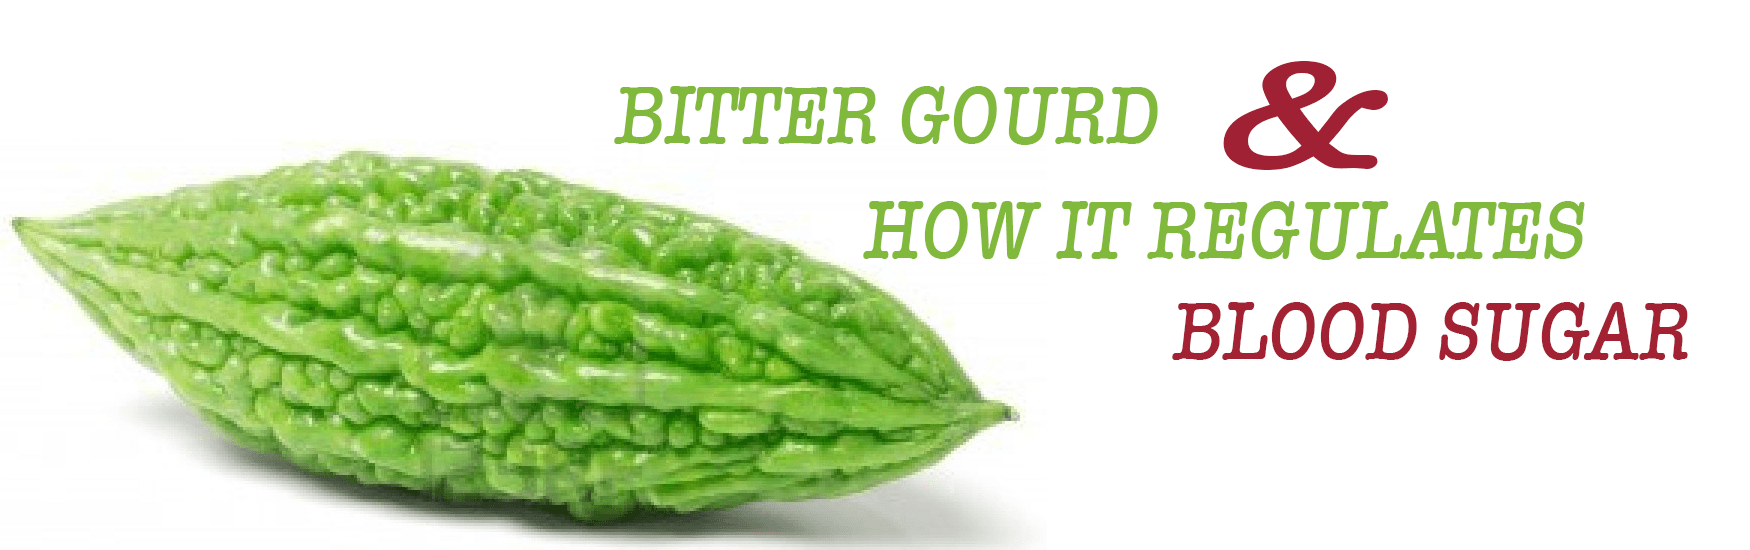 Bitter Gourd and How it regulates Blood Sugar